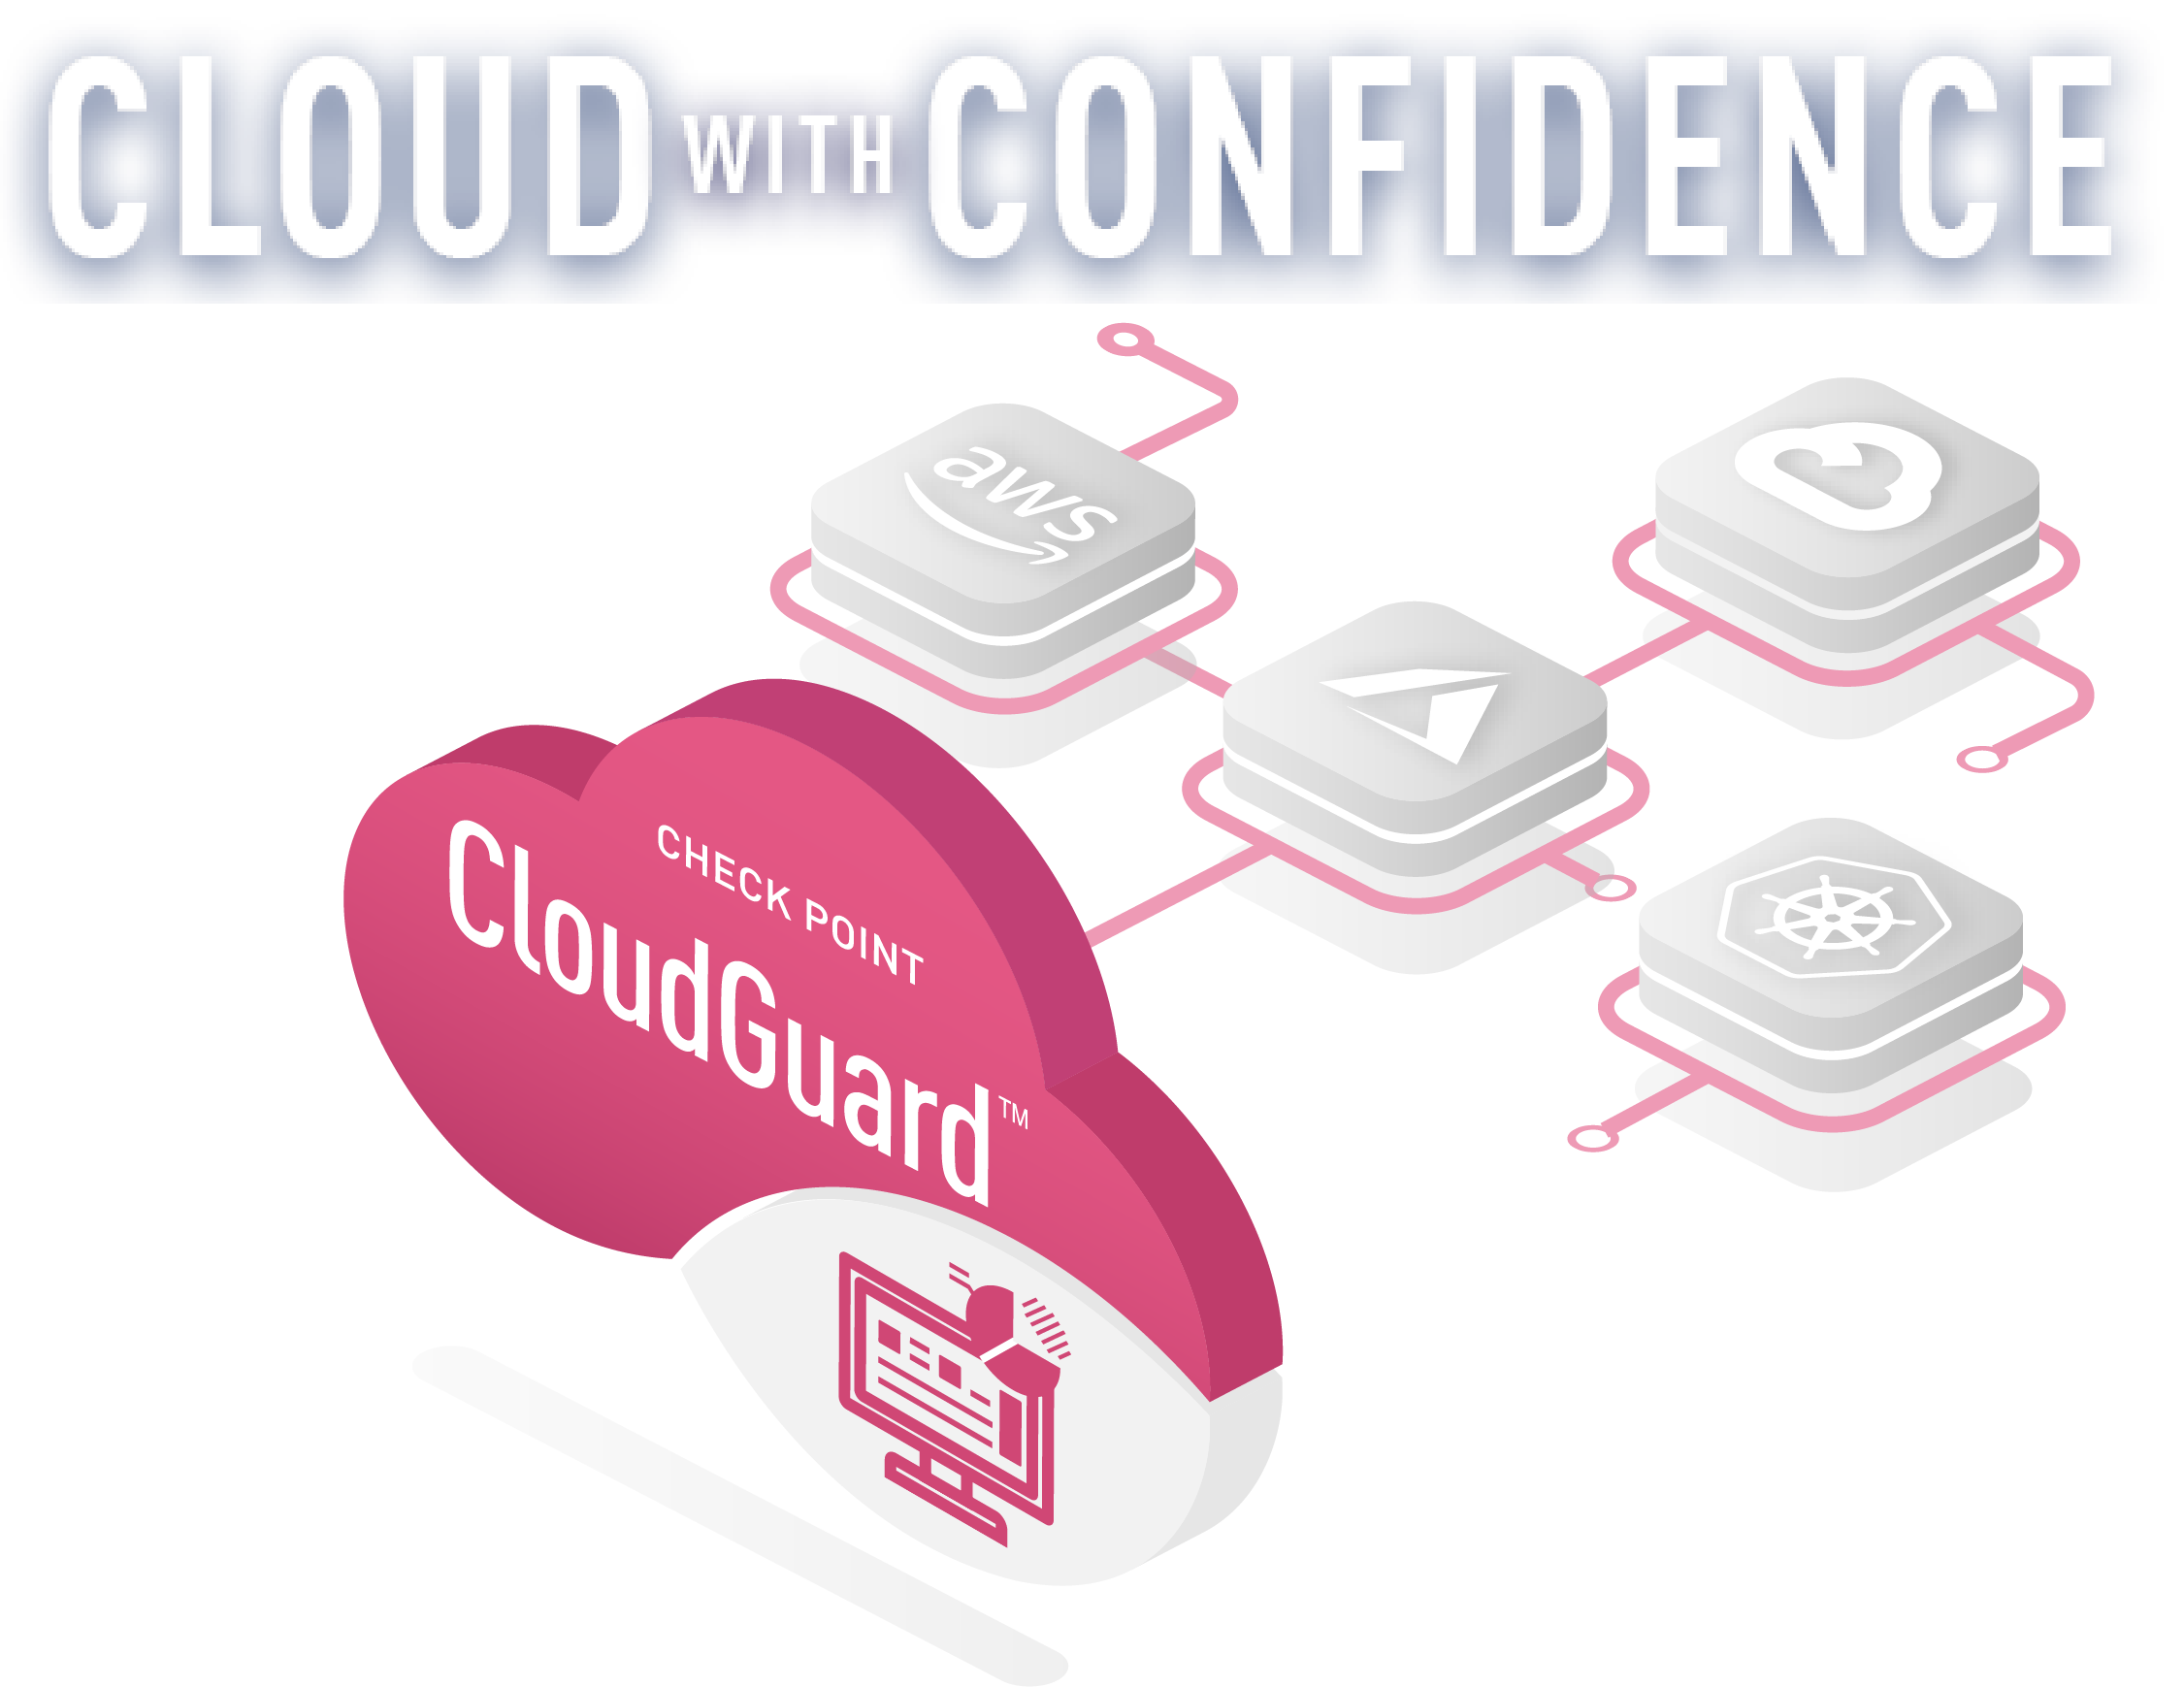 CloudGuard Posture Management logo - Cloud with confidence